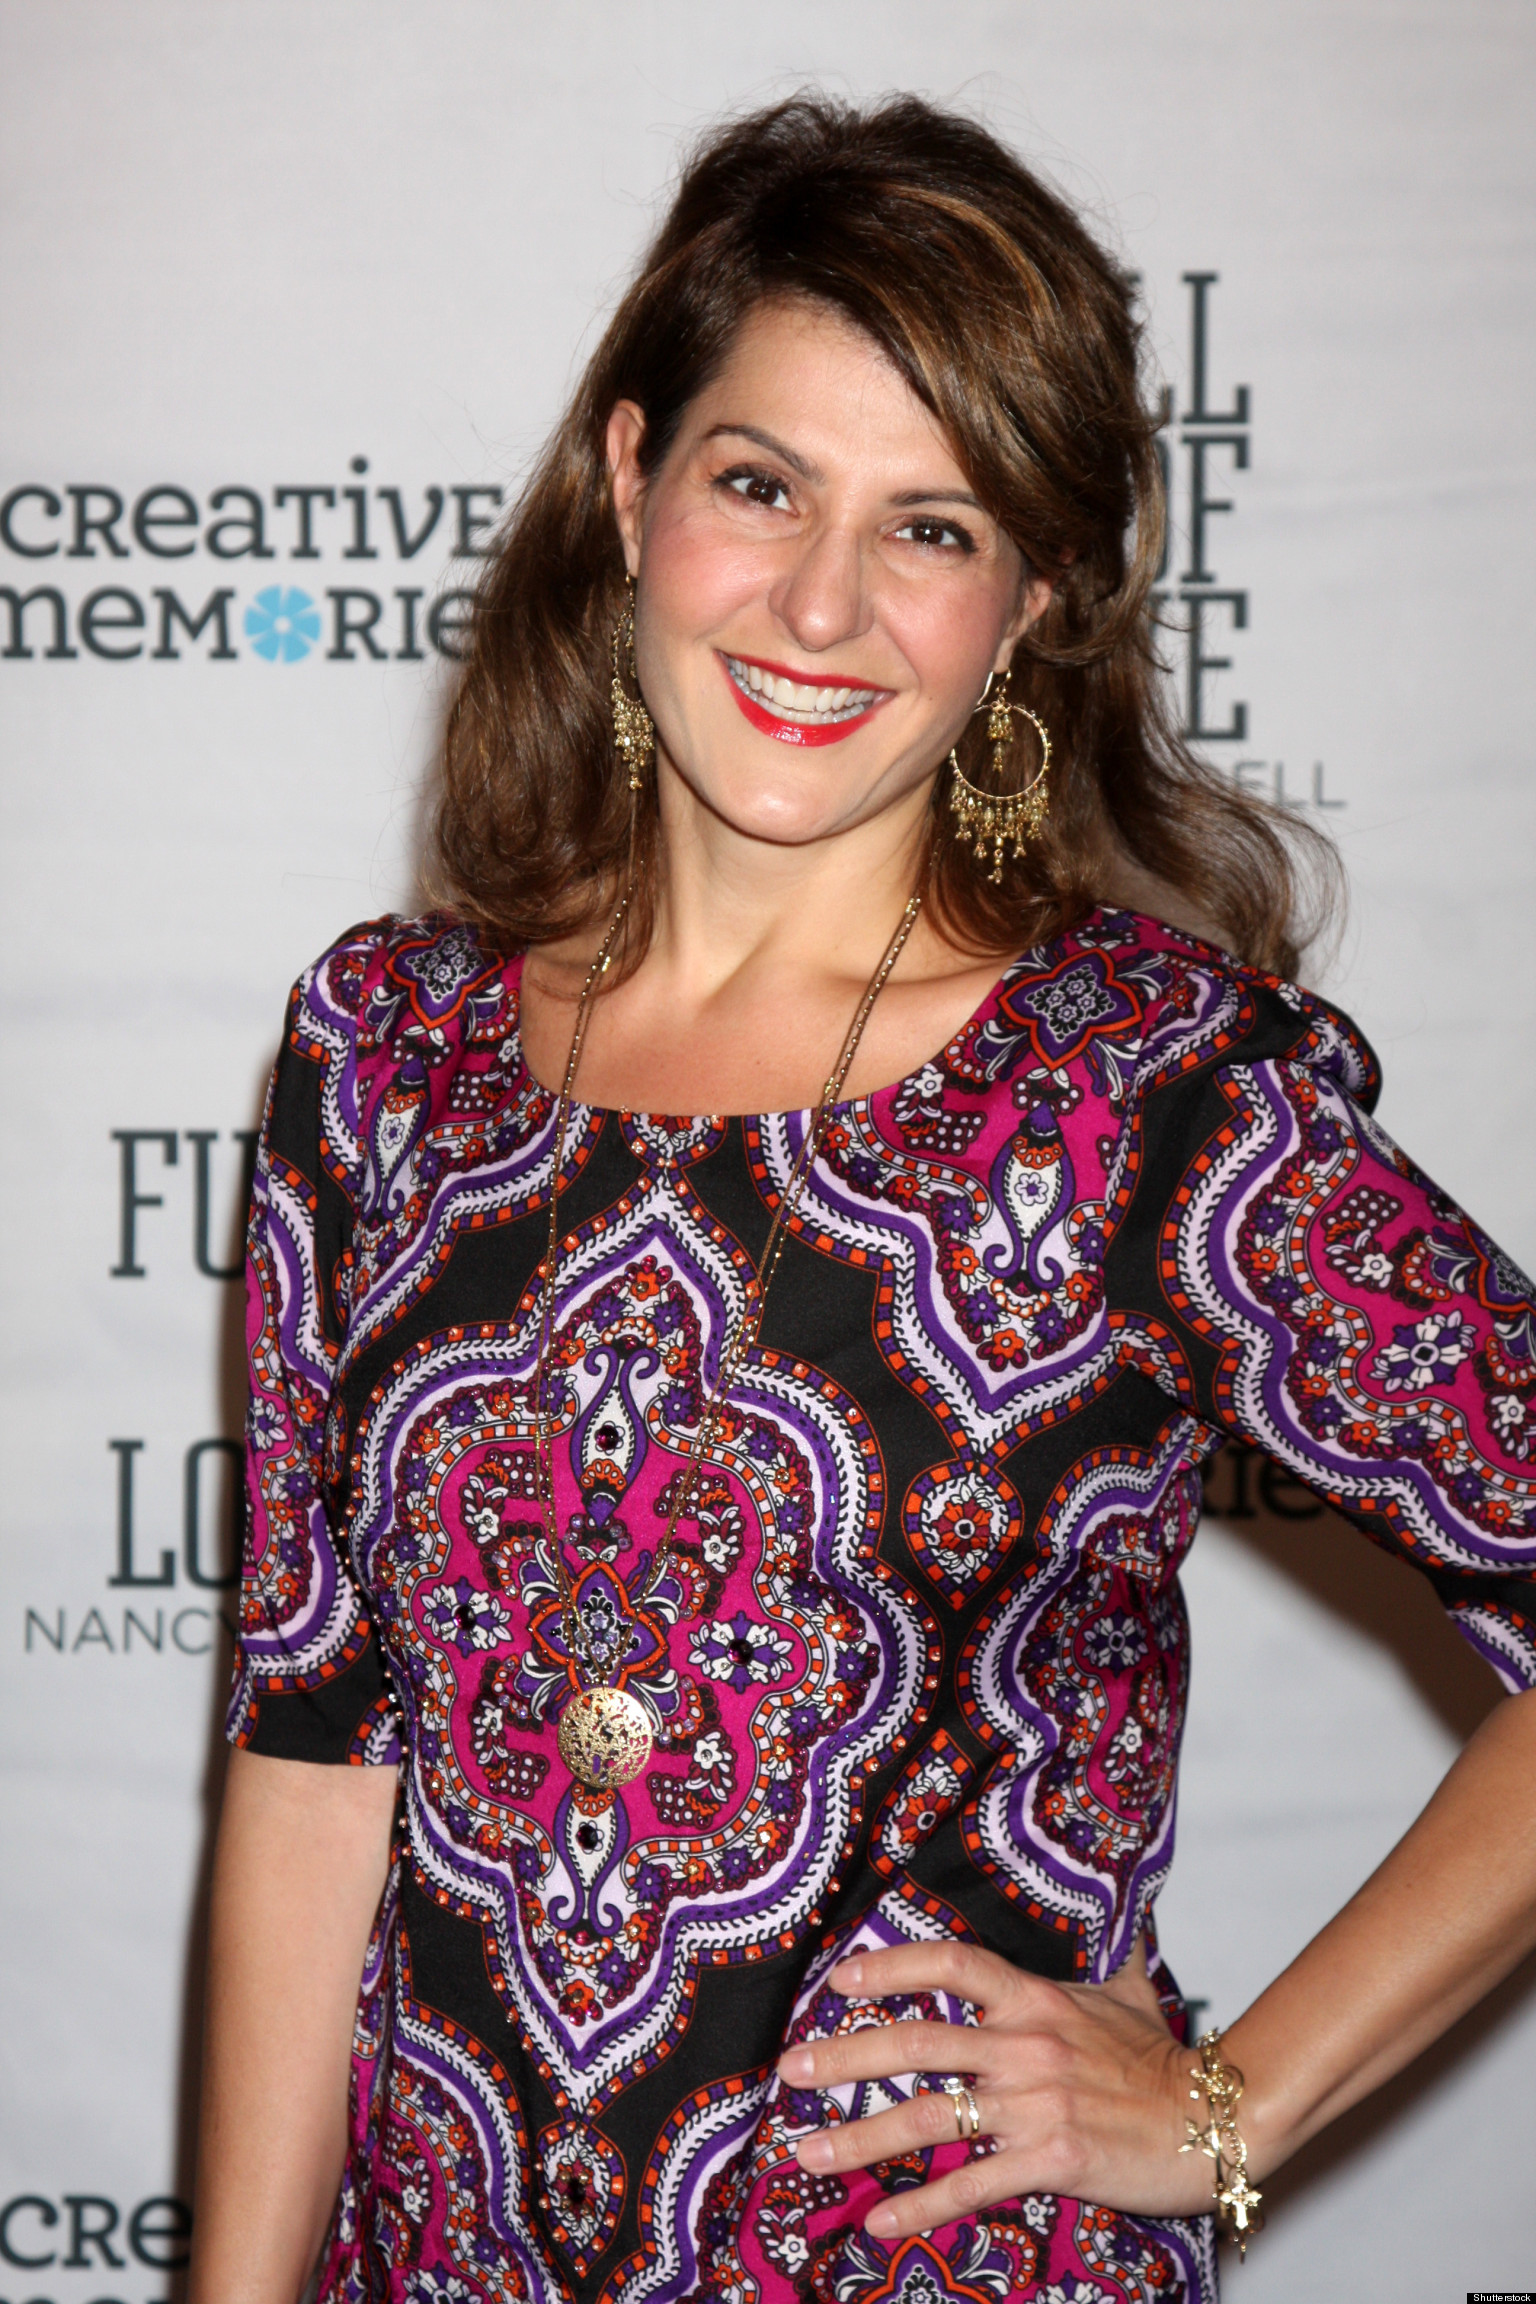 nia vardalos instant mom describes the moment she